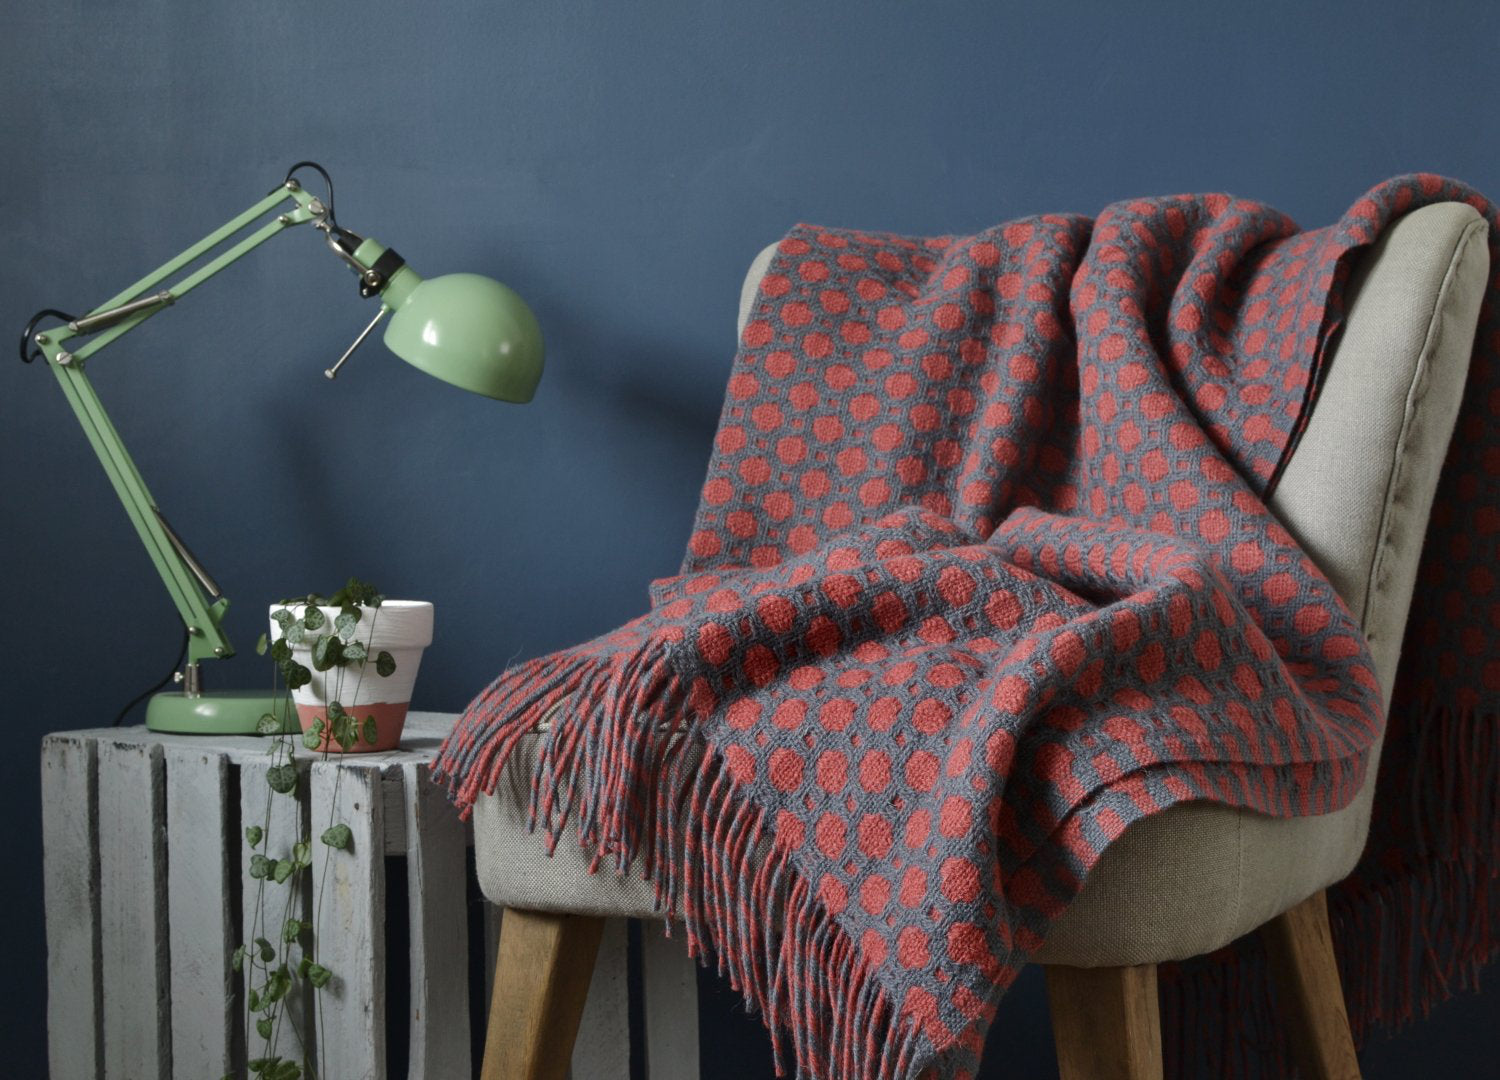 Cosy reading corner with blanket from The British Blanket company